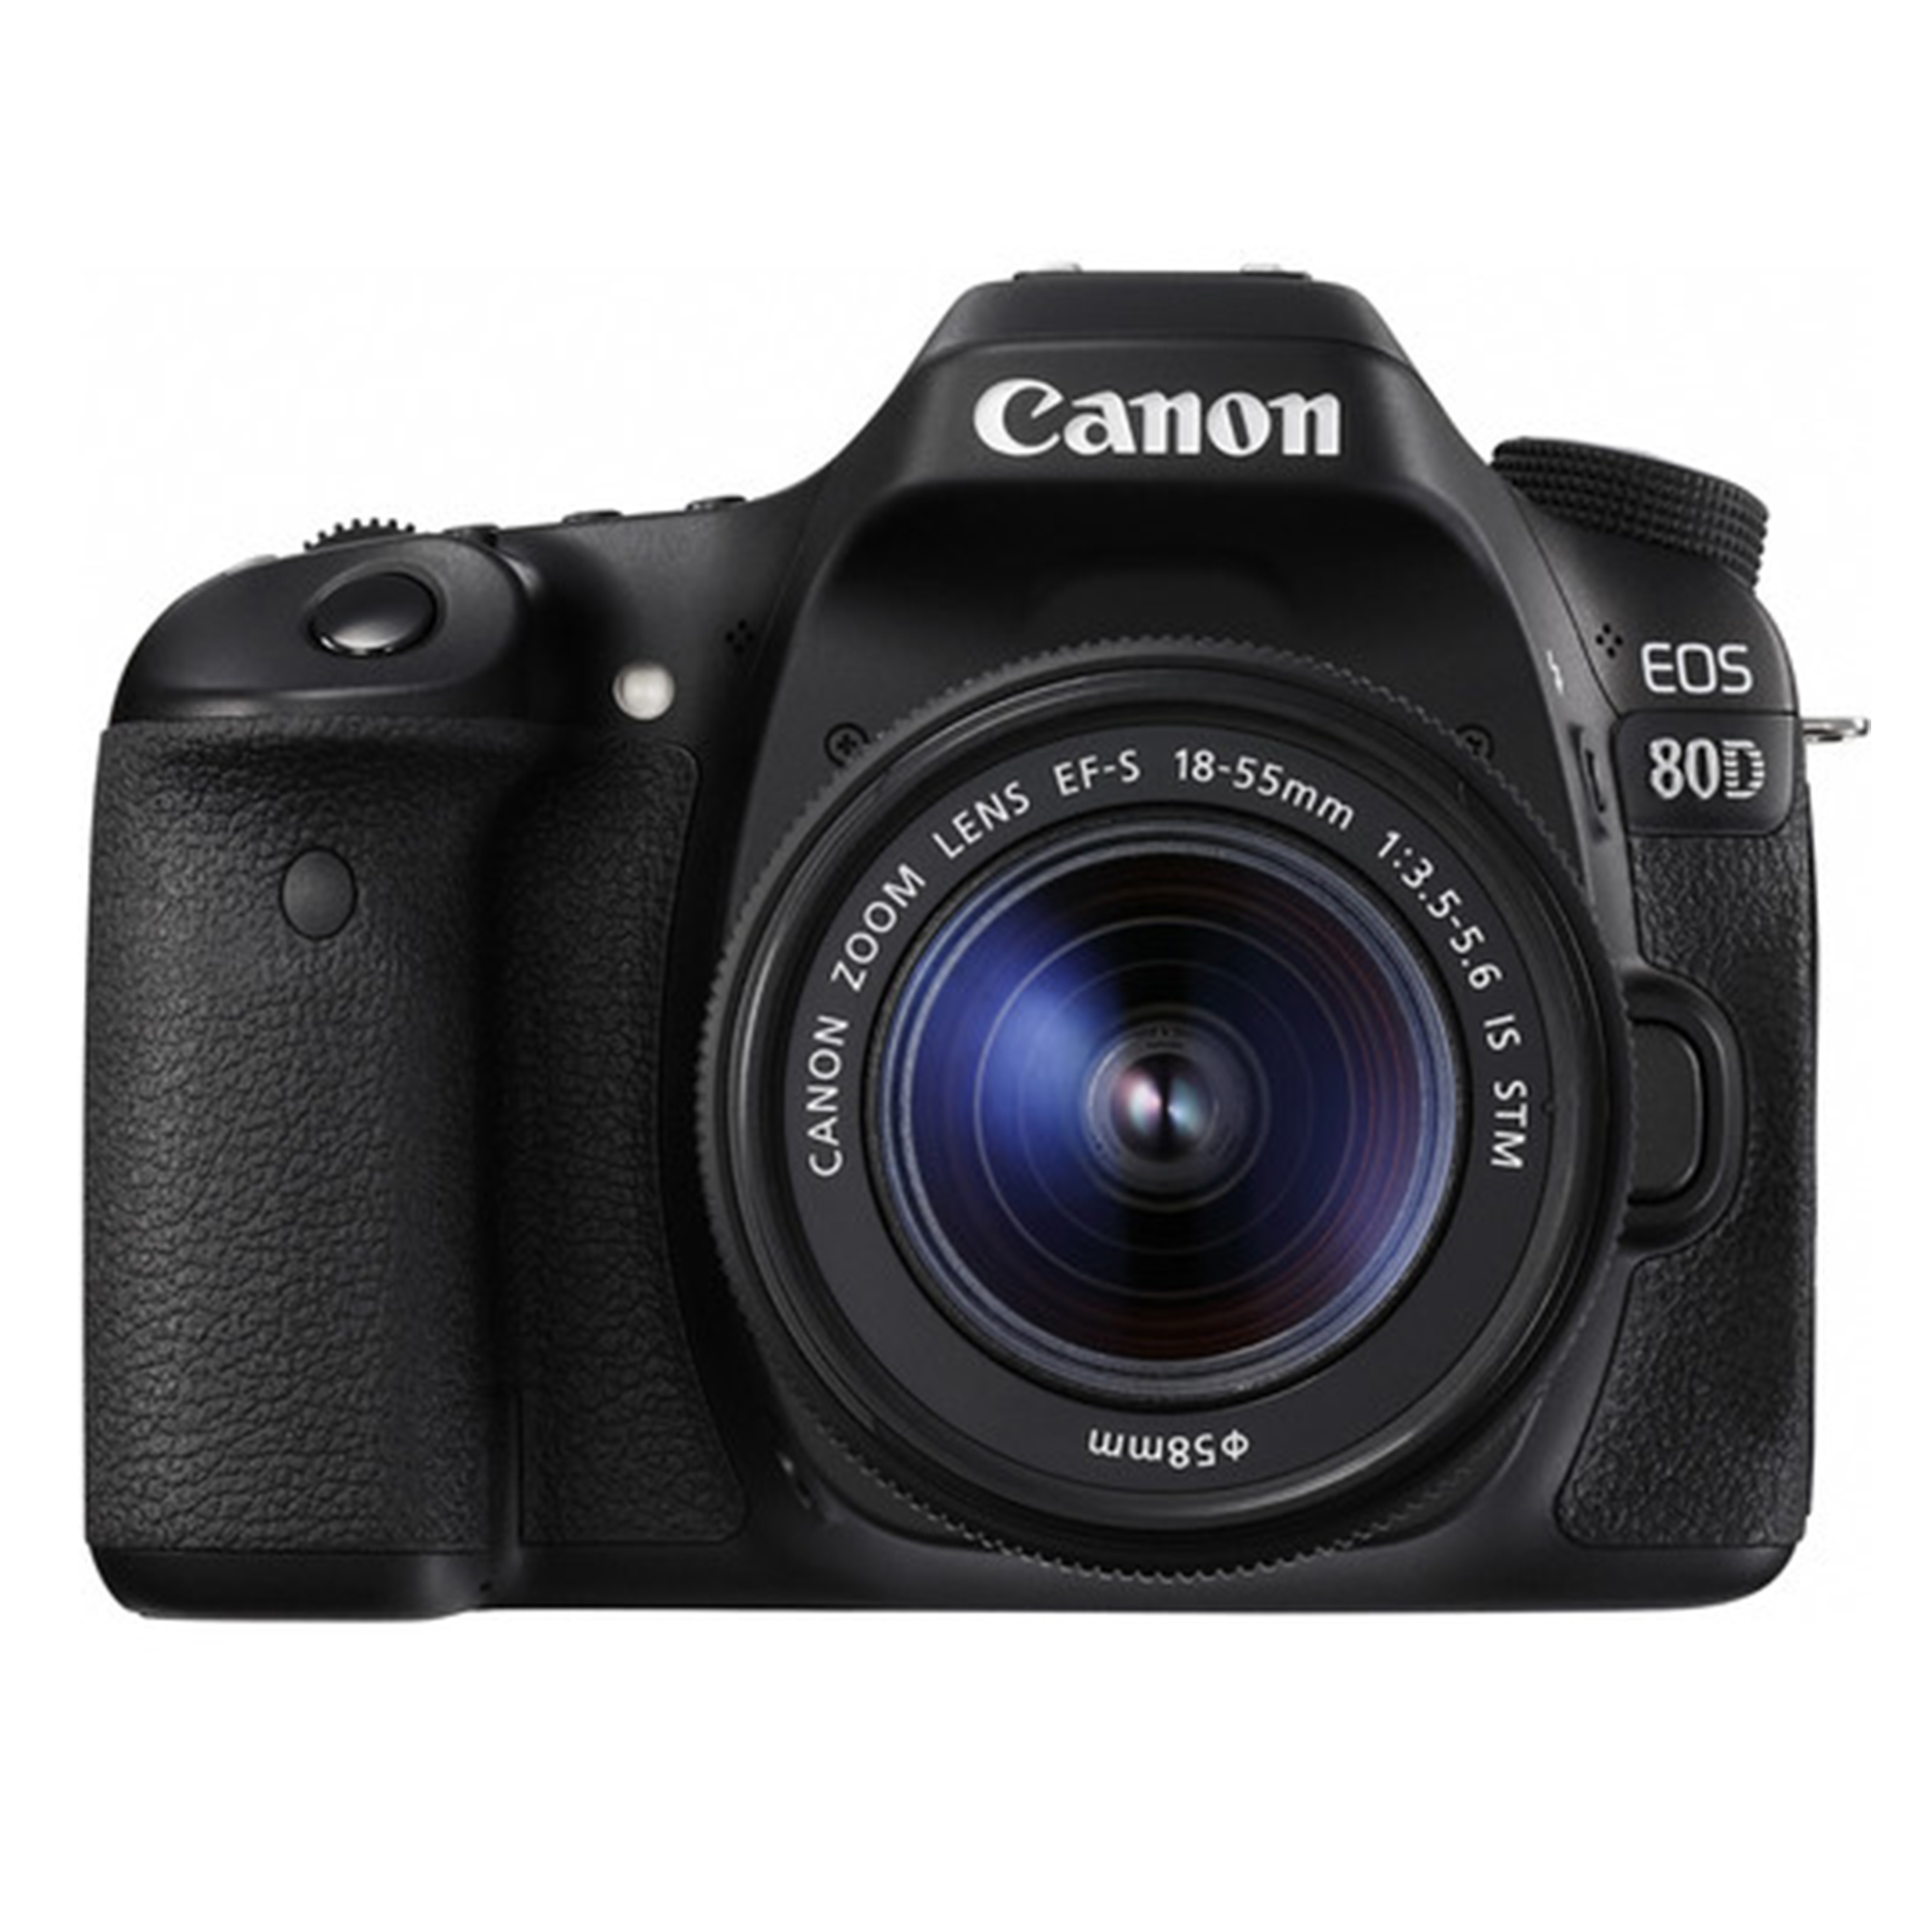 Canon EOS 80D DSLR Camera with 18-55 mm Lens